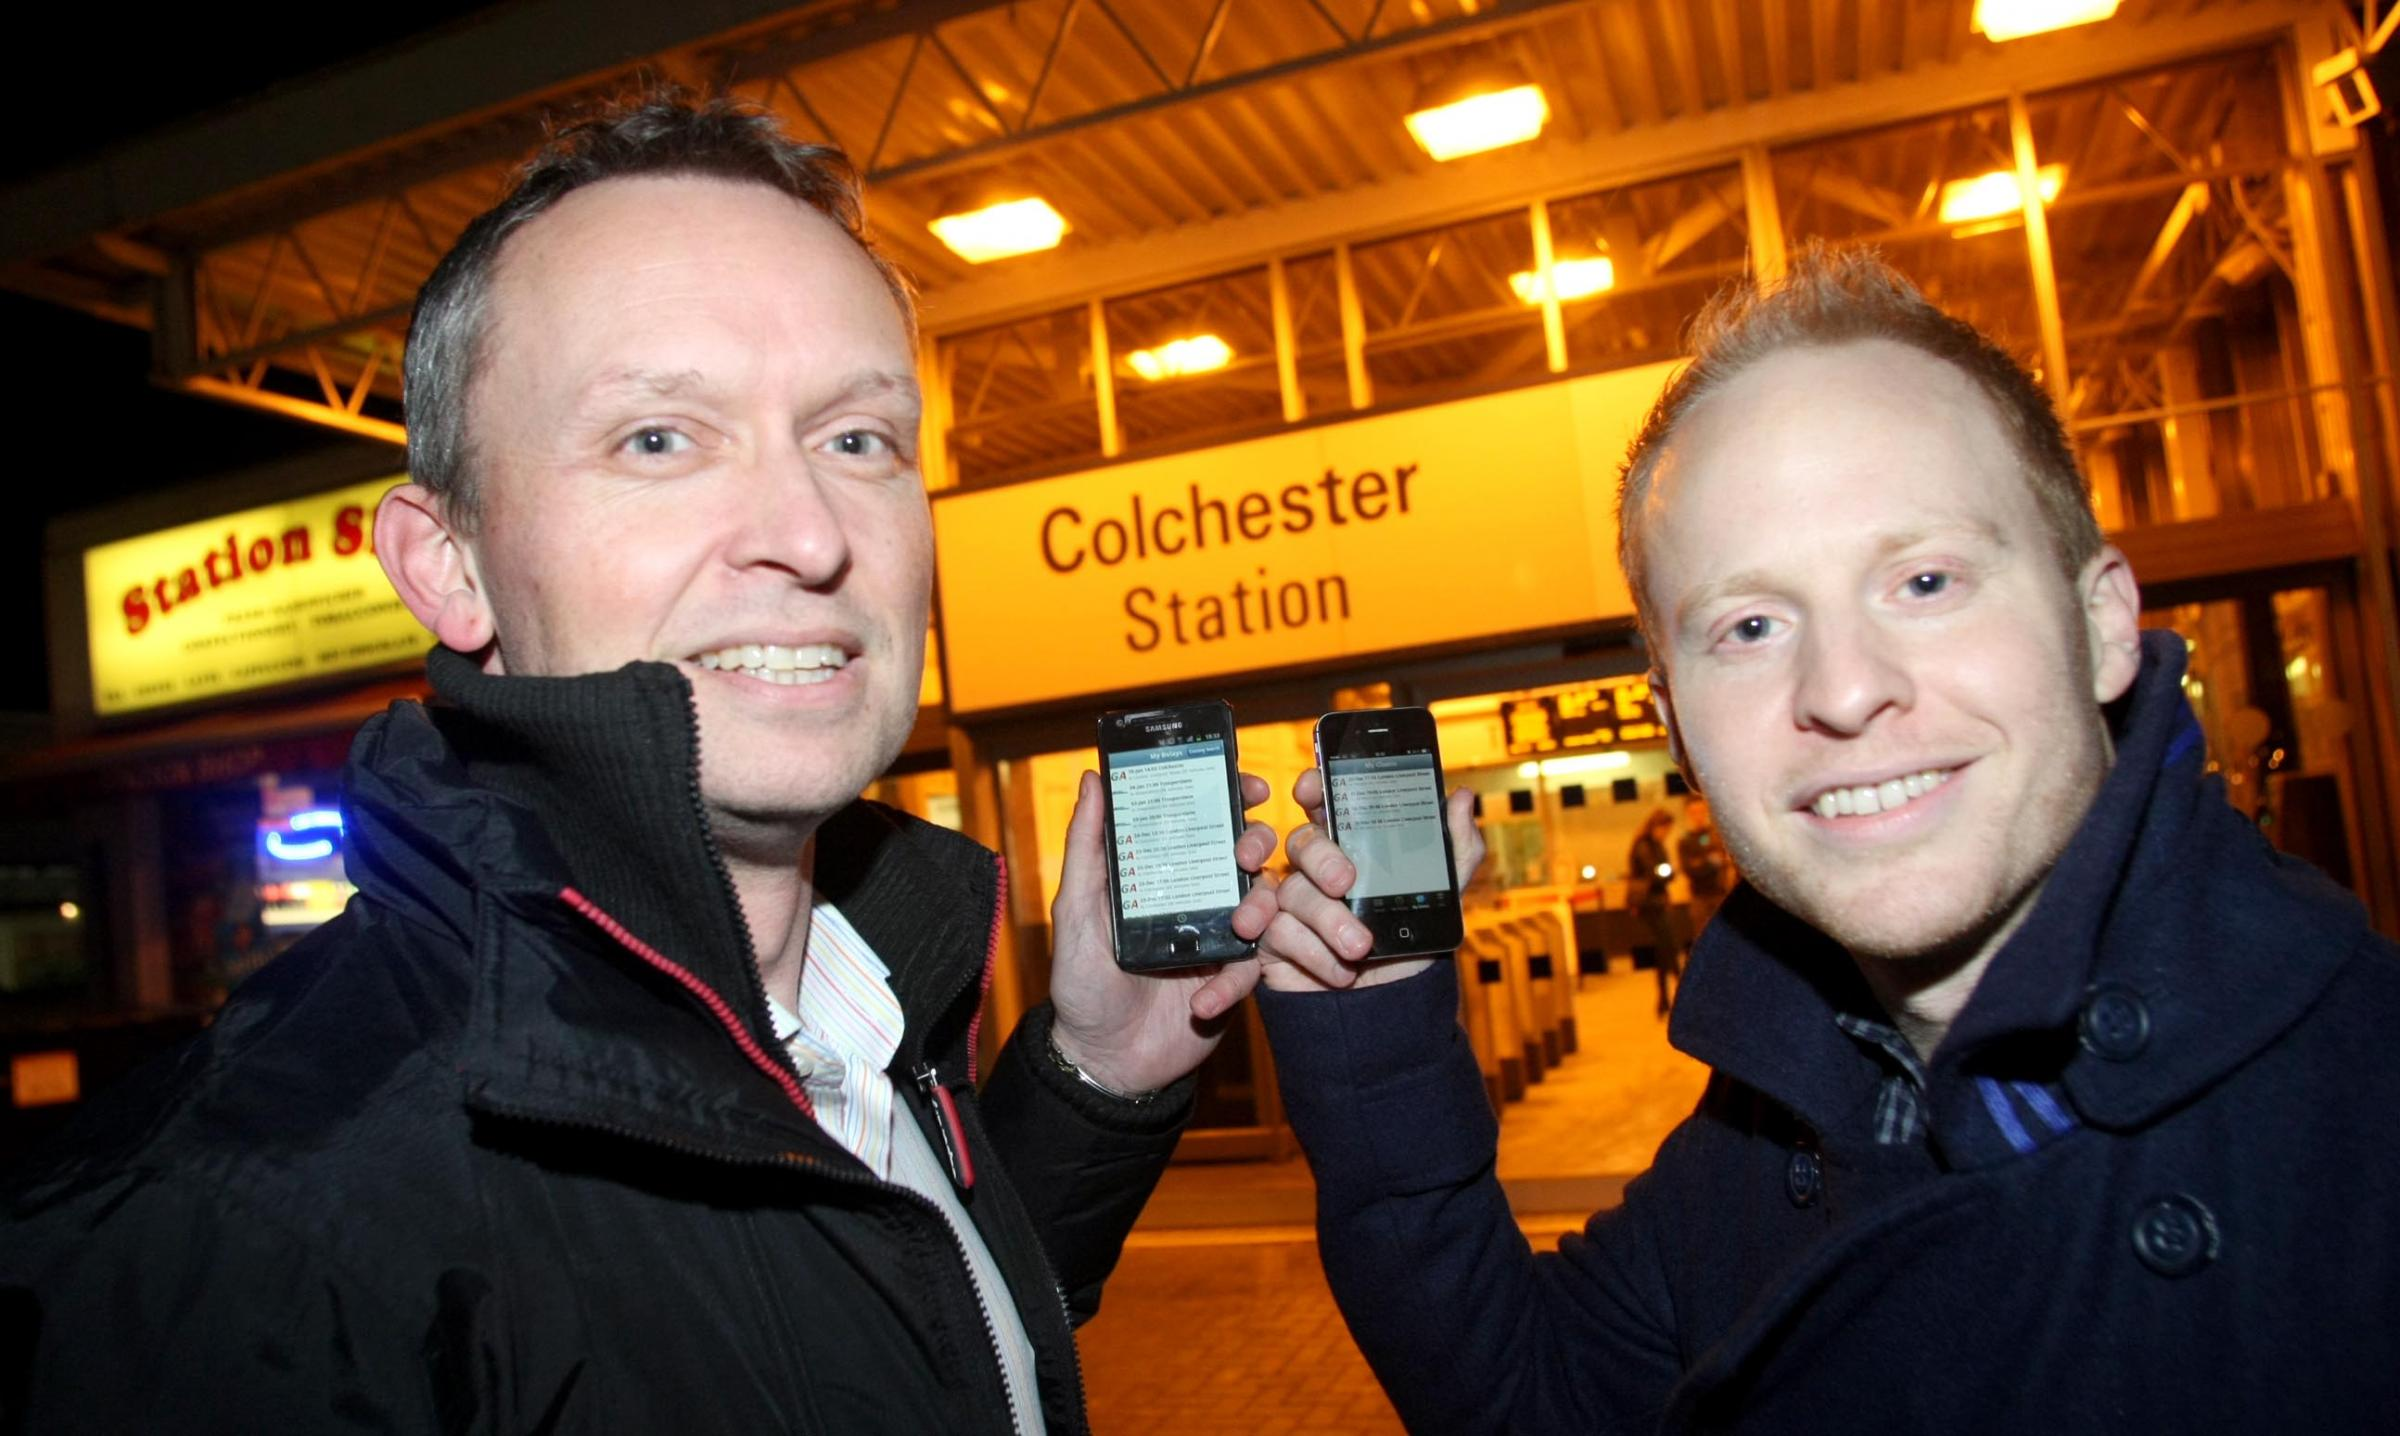 Pair's app now focuses on cancelled trains